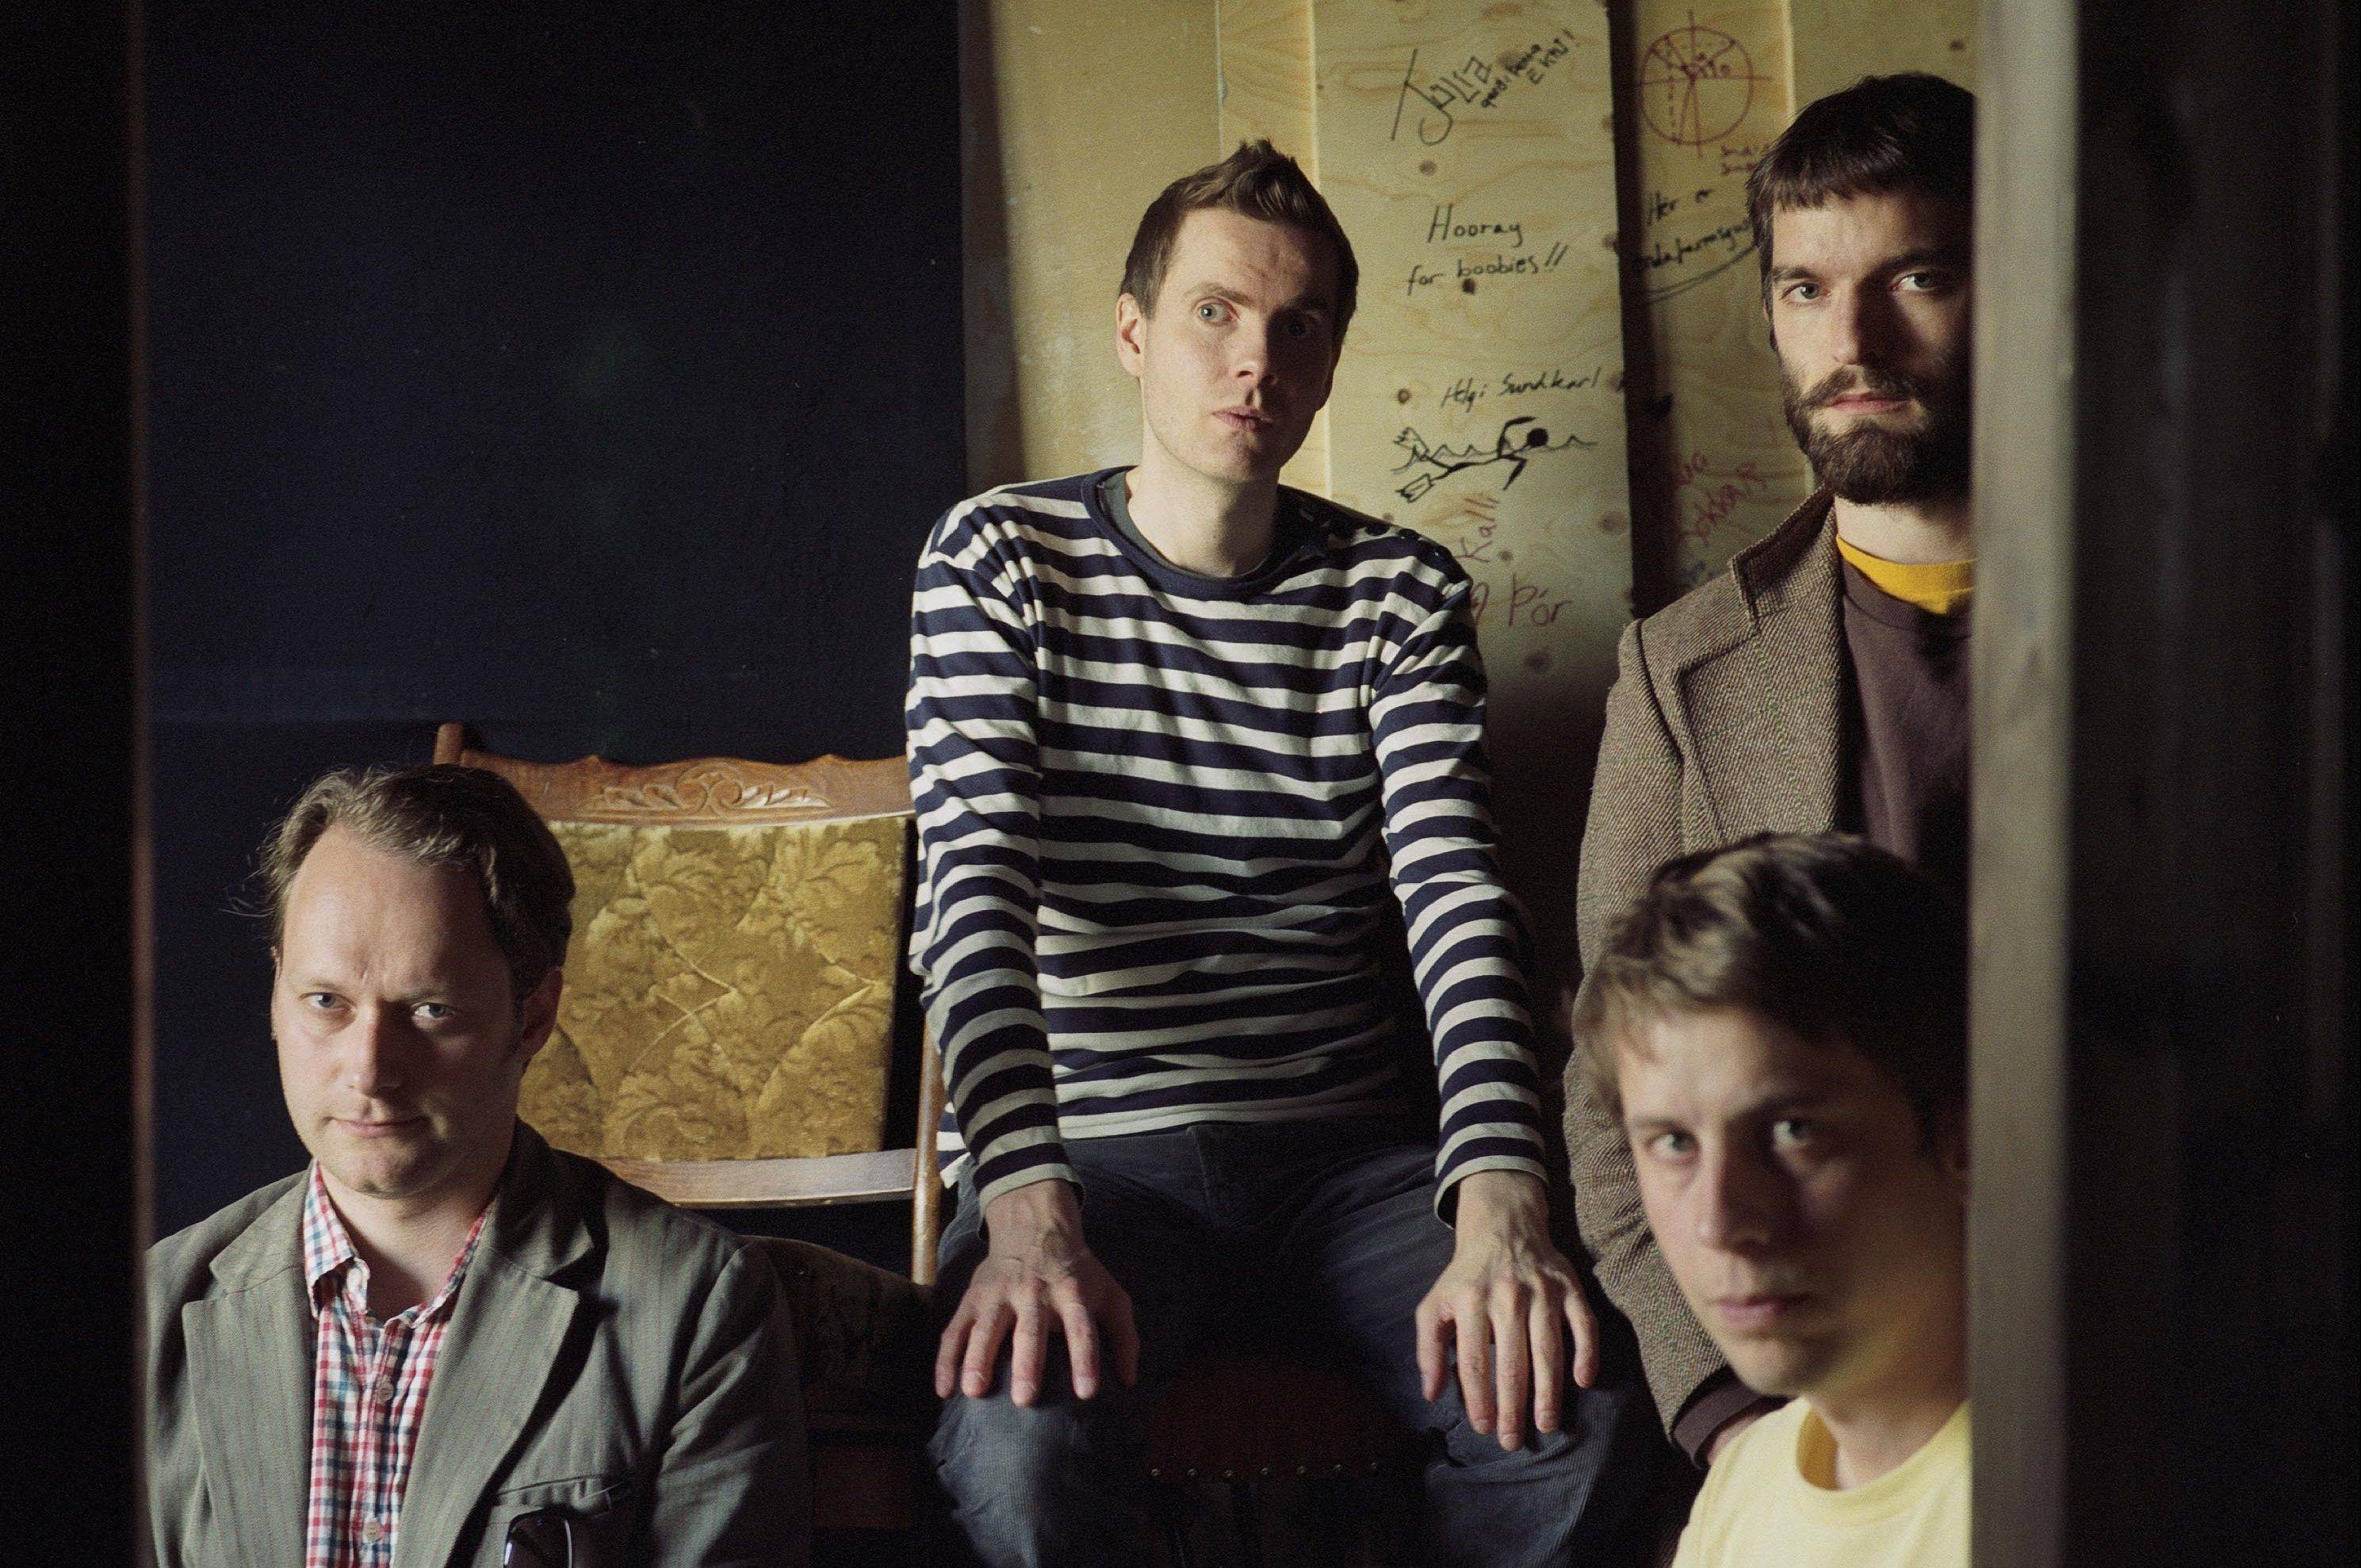 Sigur Rós is set to perform at the Auditorium Theatre of Roosevelt University in Chicago at 7:30 p.m. Monday, Sept. 30.